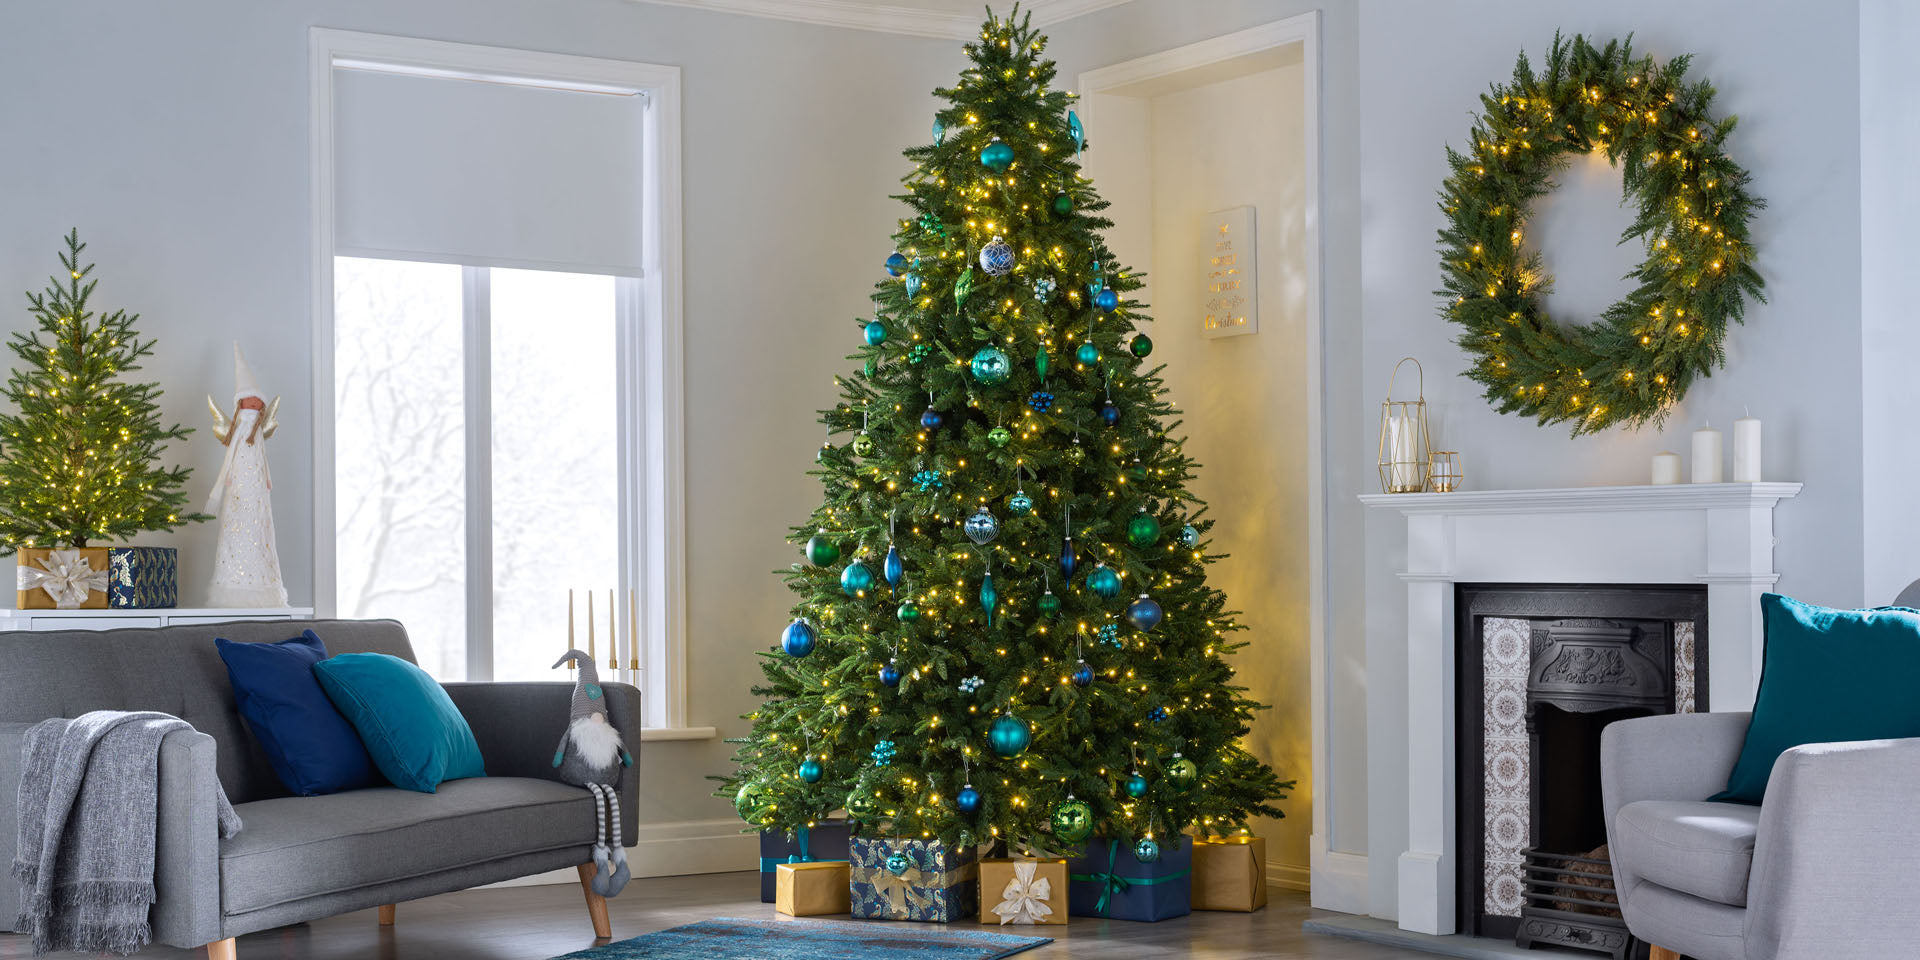 Werchristmas Luxury Christmas Trees Lights And Decorations We R Christmas